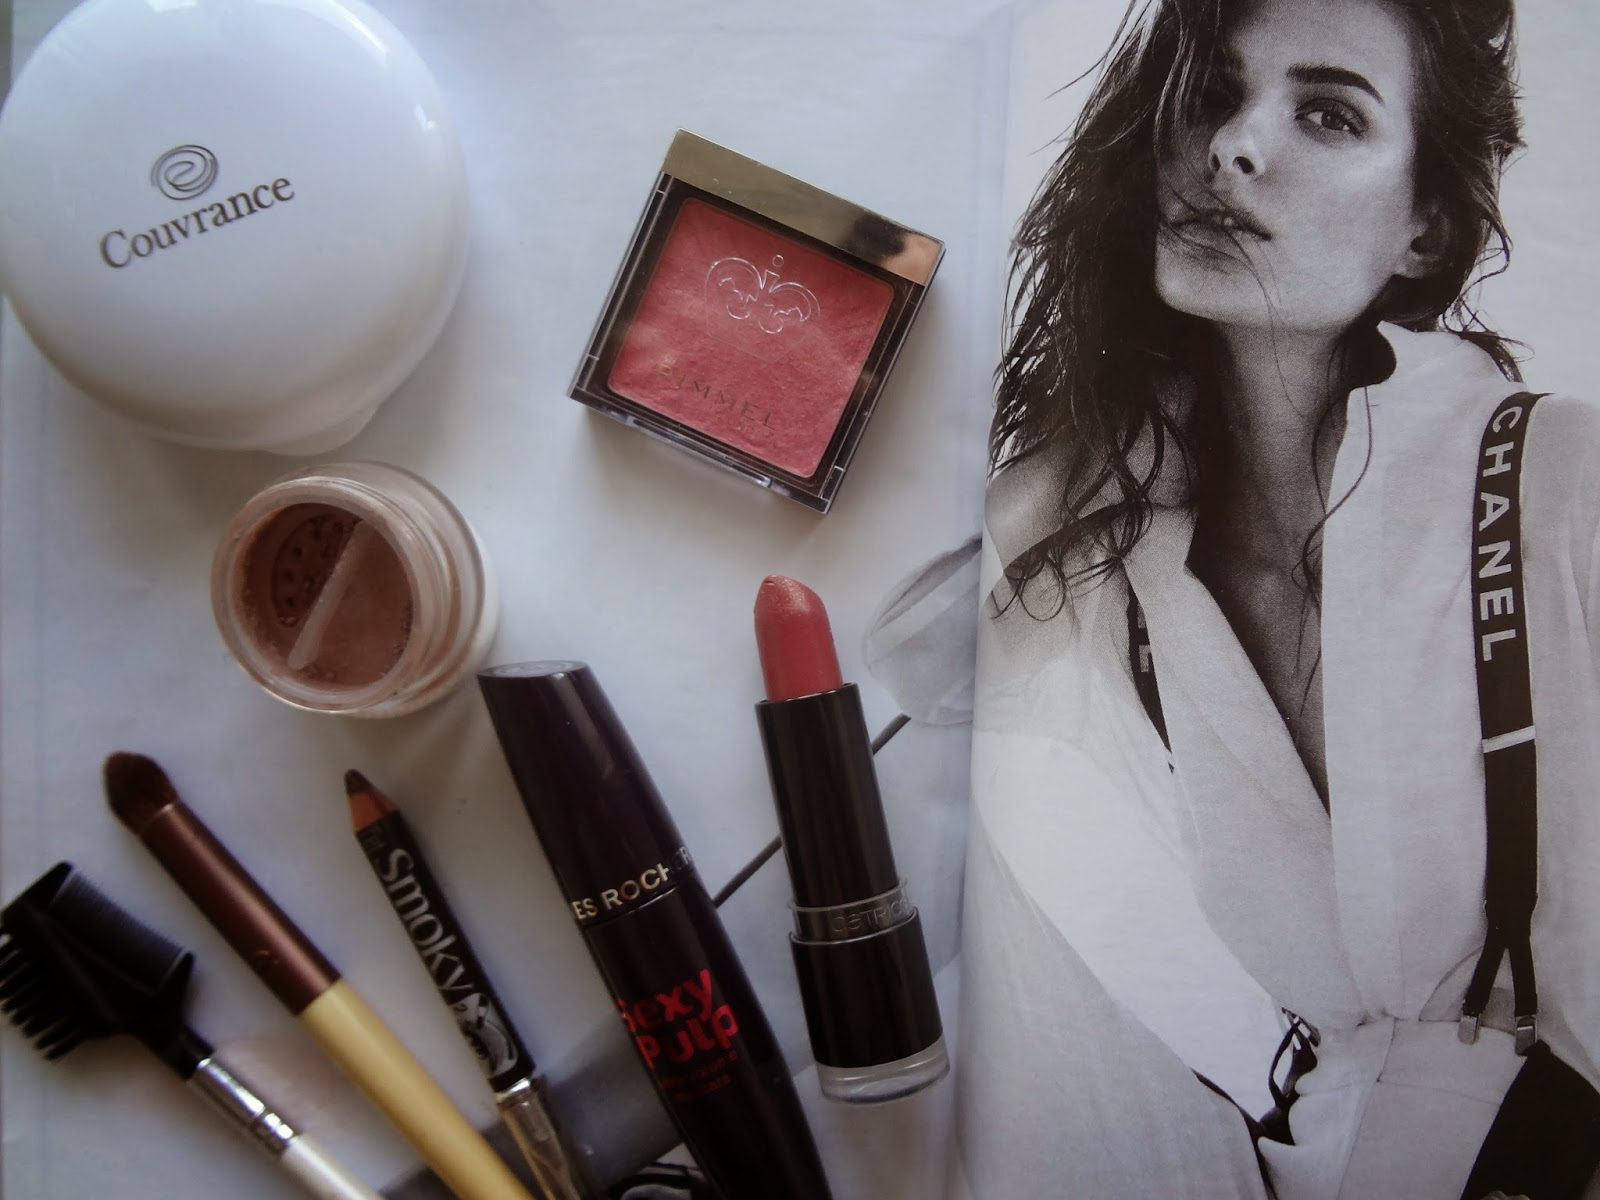 make-up-maquillage-easy-facile-simple-budget-drugstore-pas-cher-avene-couvrance-compact-oil-free-naturel-lily-lolo-mineral-eyeshadow-smoked-brown-bourjois-smoky-brown-blush-rimmel-live-pink-rouge-levres-catrice-lipstick-ultimate-colour-ginger-fred-mascara-sexy-pulp-yves-rocher-pinceau-eco-tools-brush-review-revue